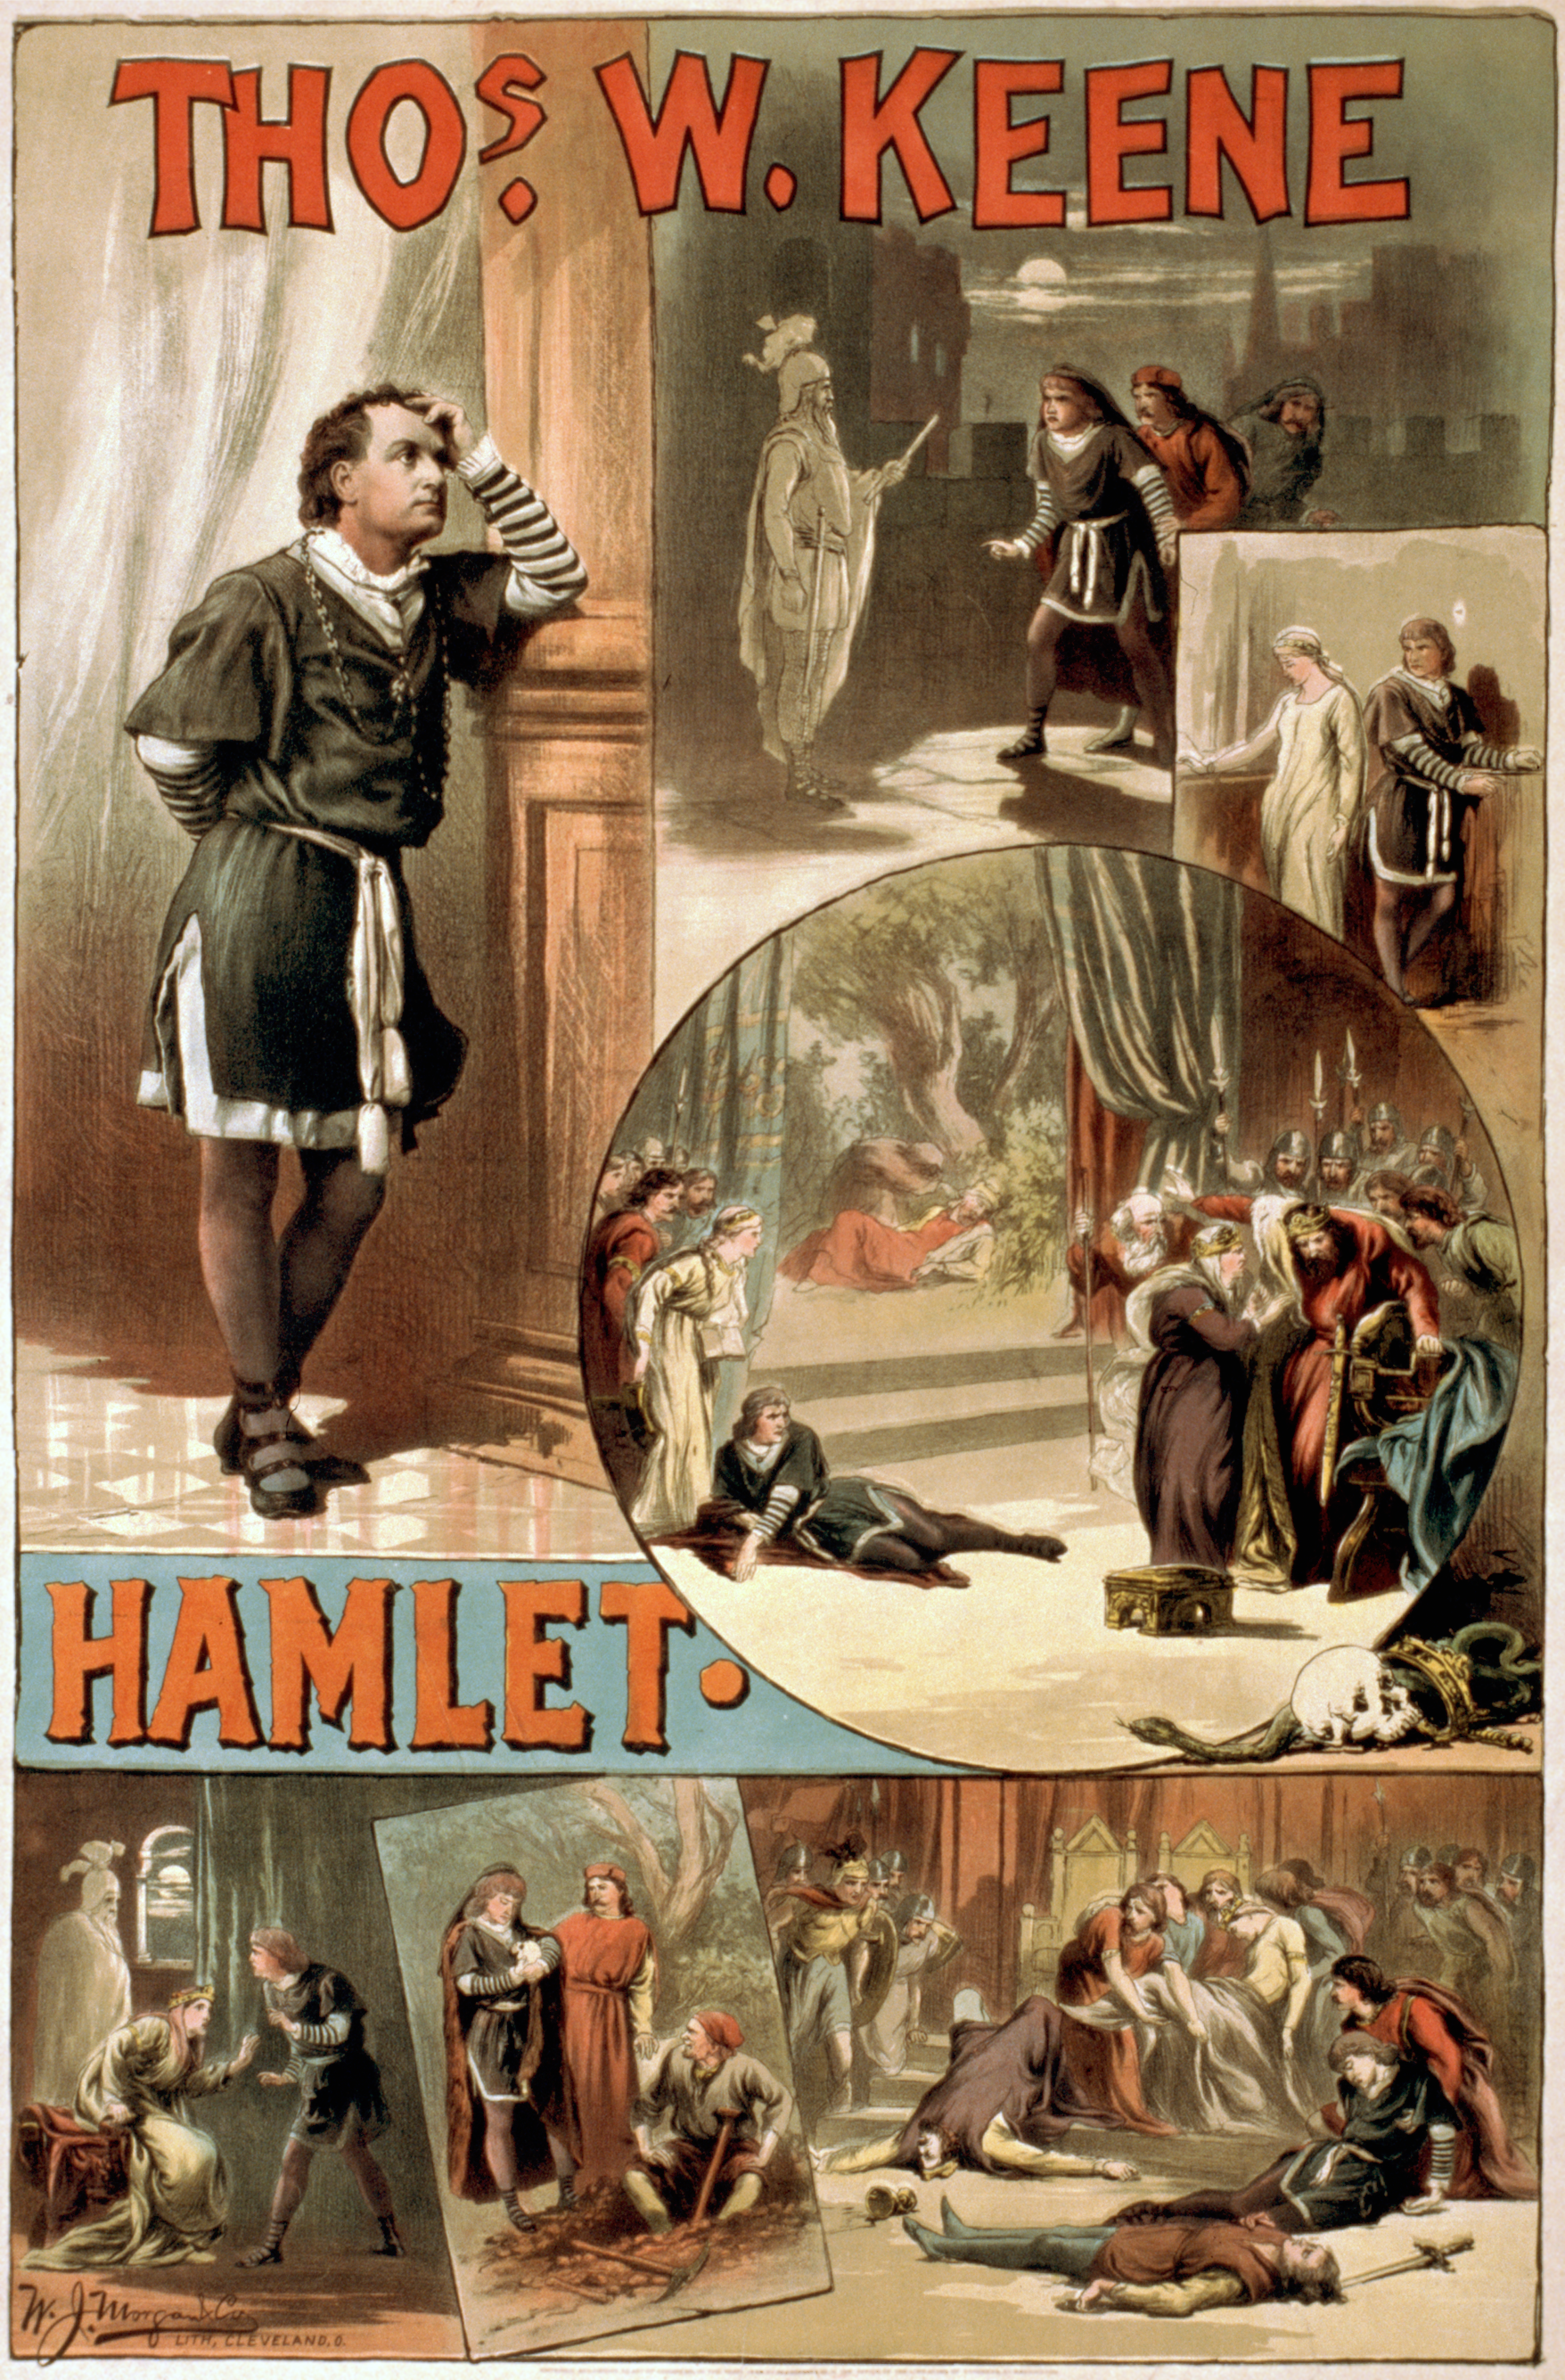 the story of the revenge of hamlet in the play hamlet by william shakespeare Get an answer for 'explore the theme of revenge throughout hamlet, by william shakespeare, using specific examples throughout the play' and find homework help for other hamlet questions at enotes.